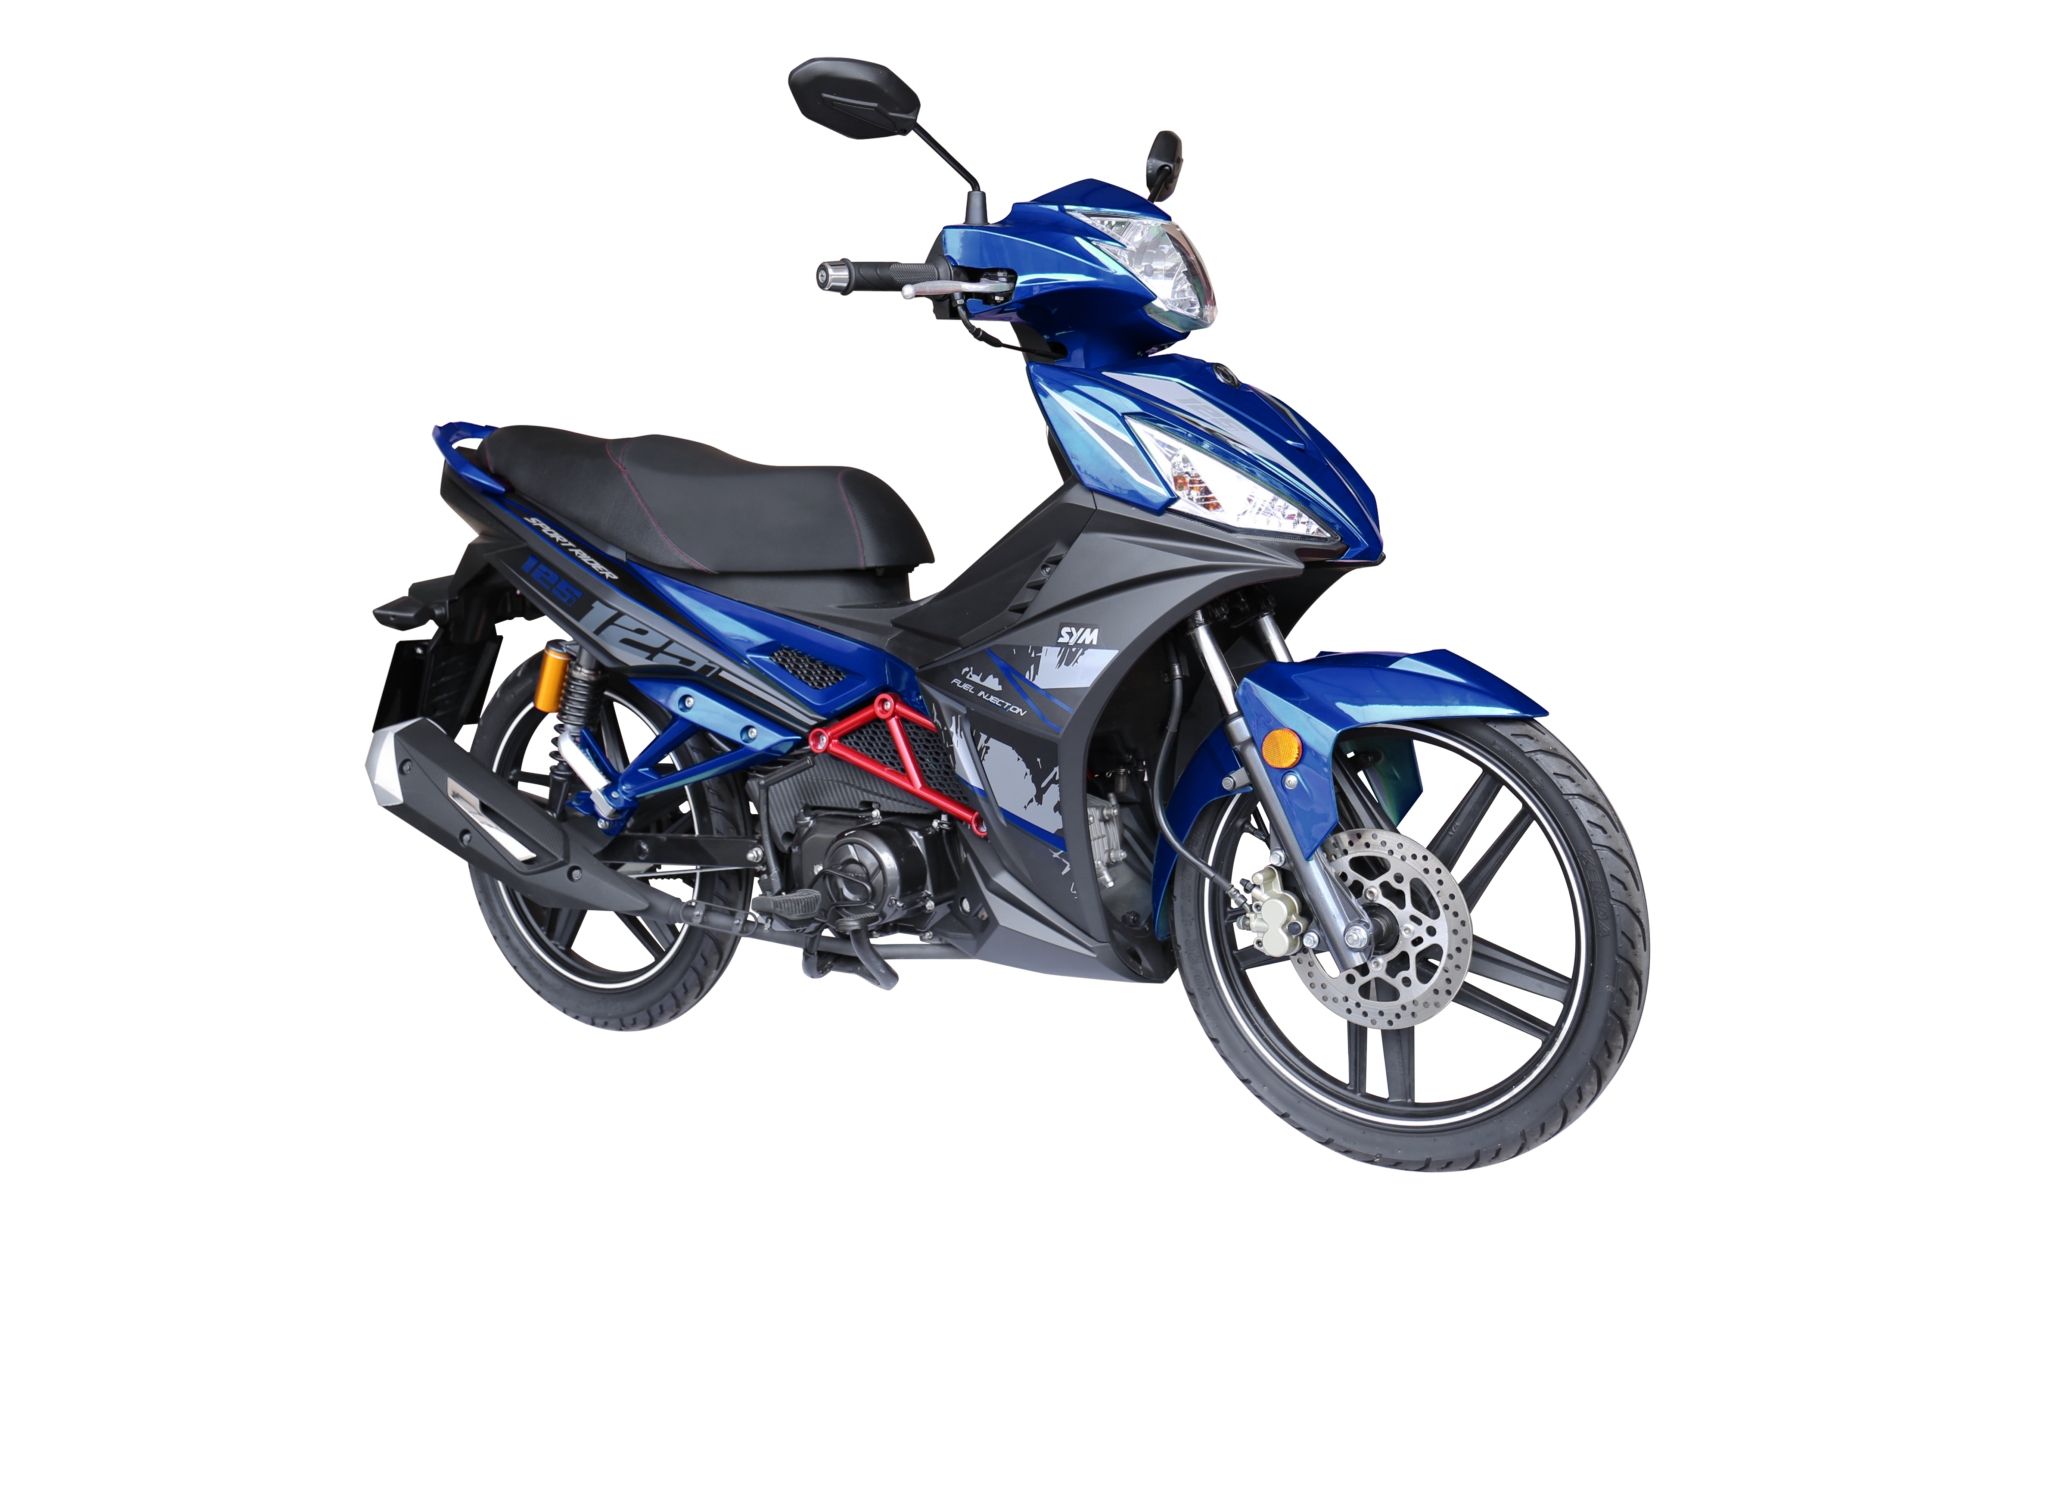 SYM Malaysia reveals the Sport Rider 125i with new graphics